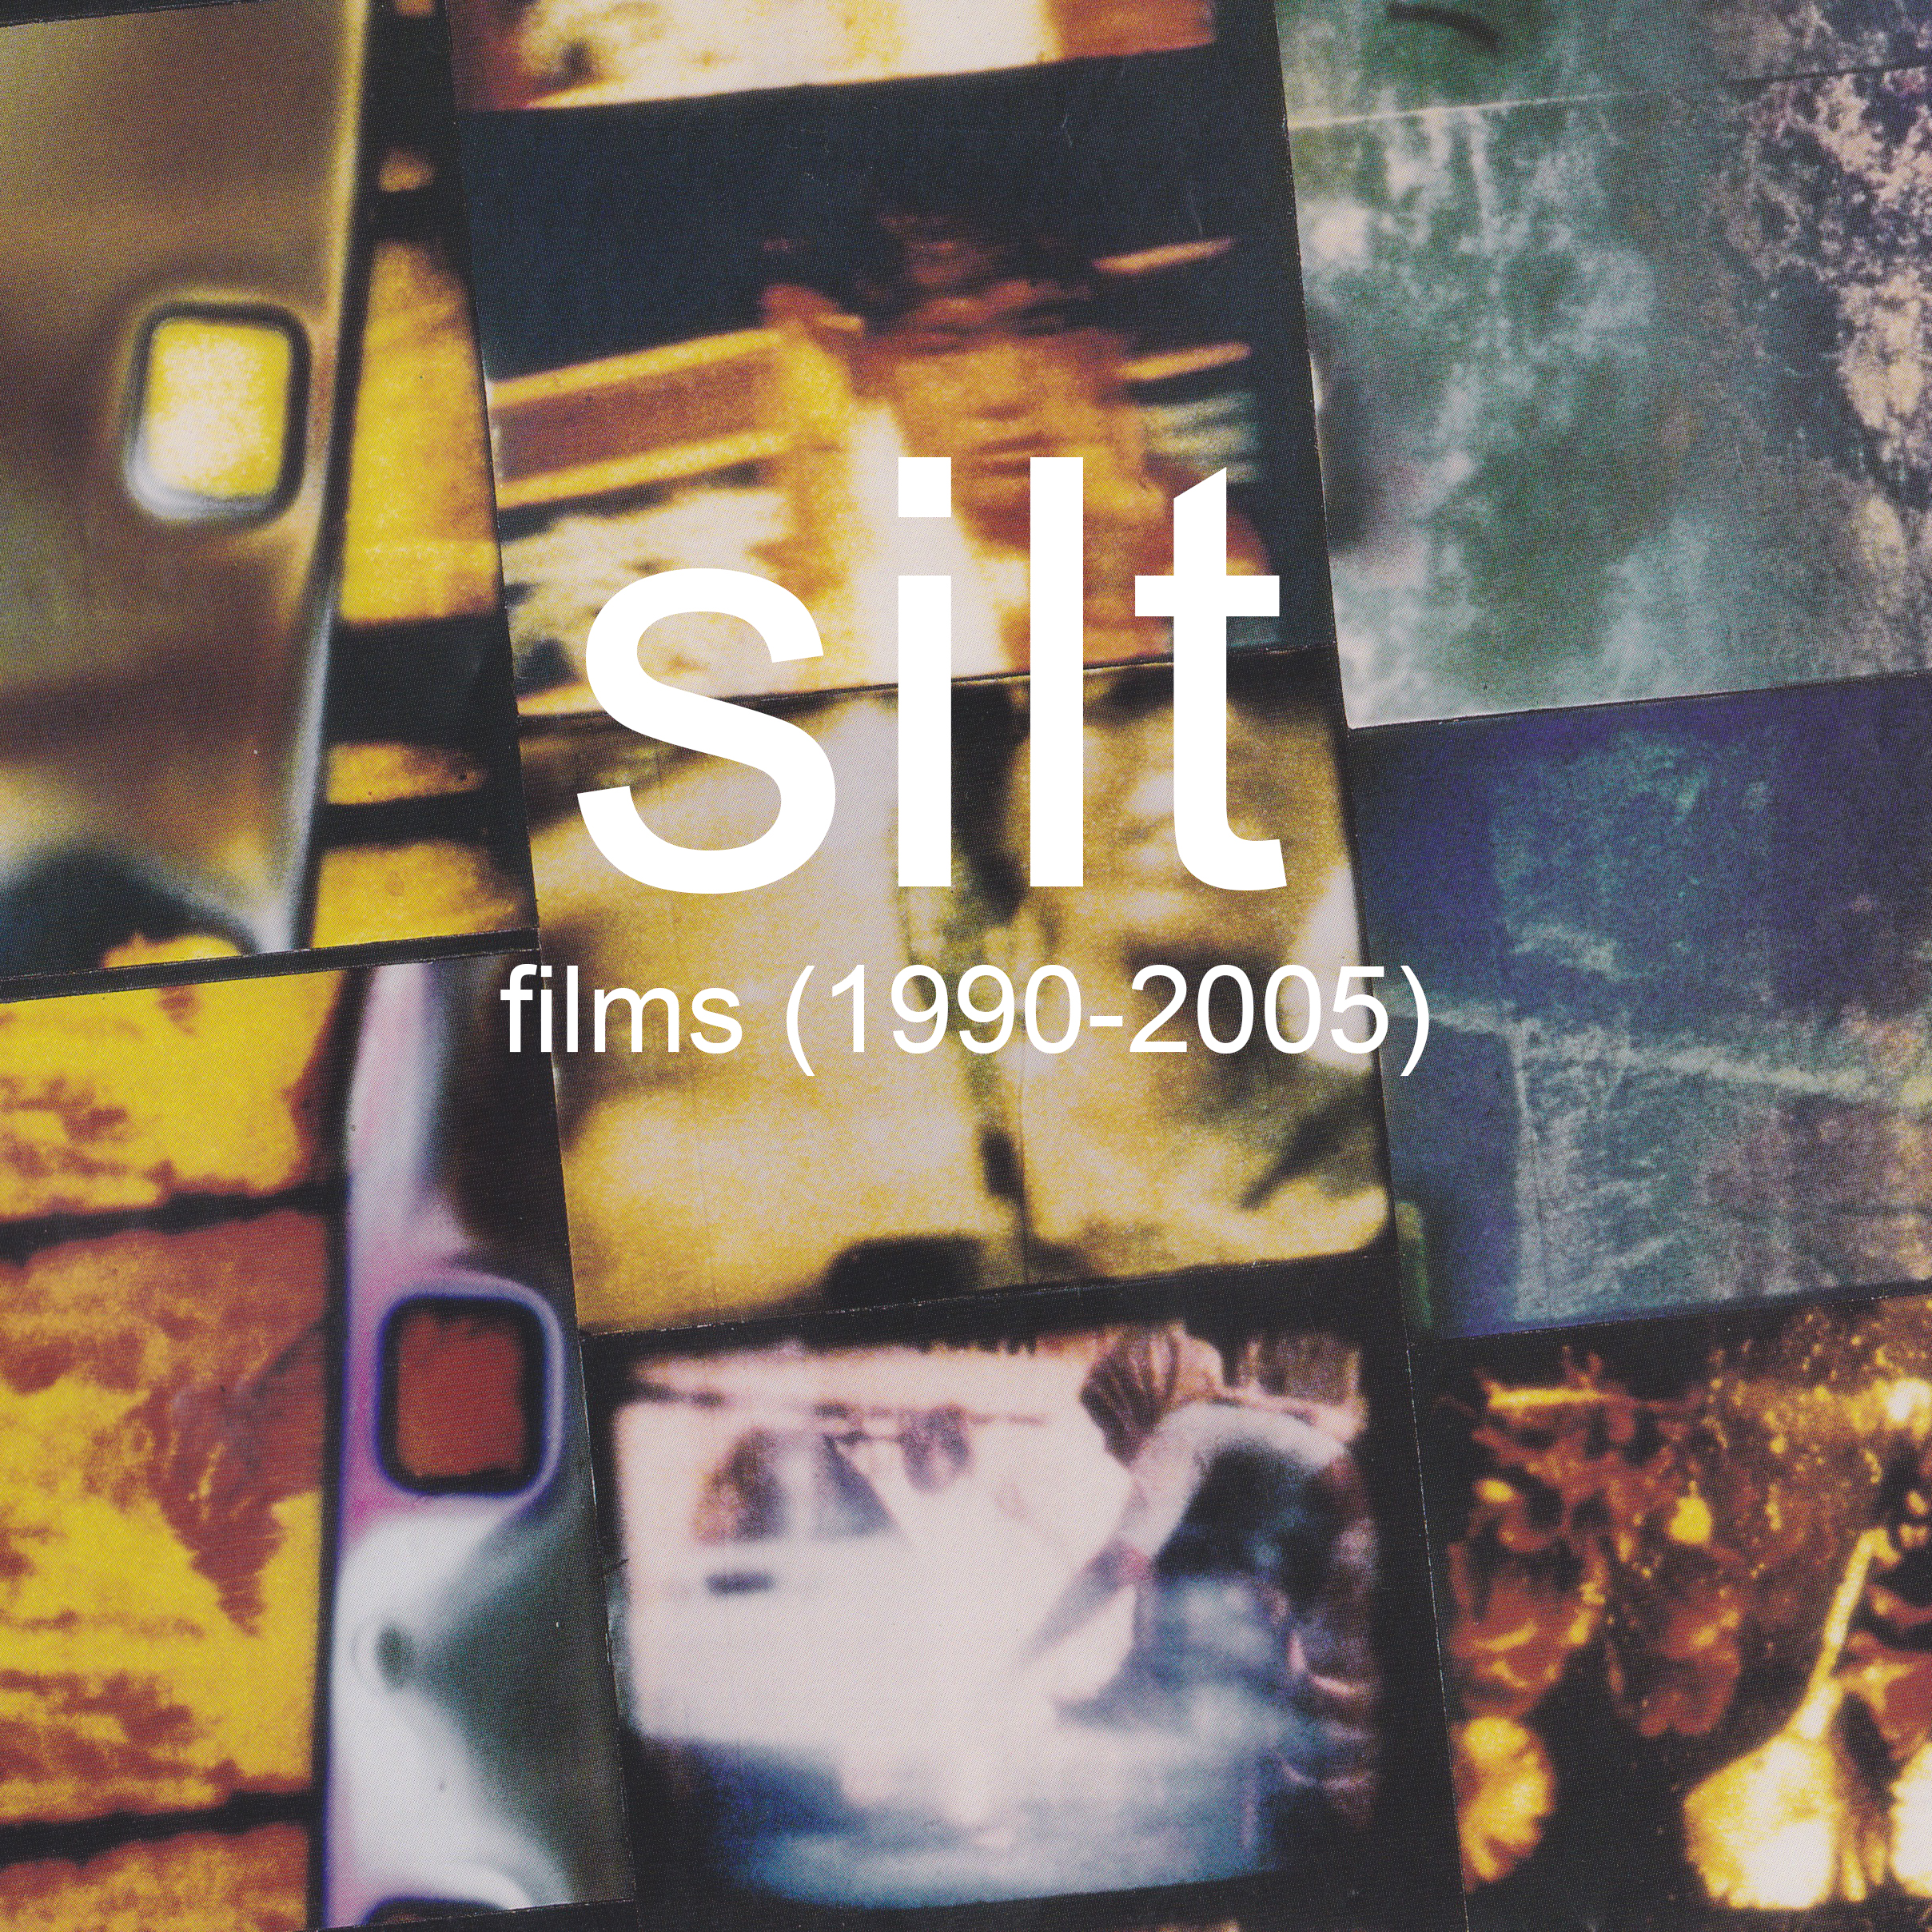 Films by the experimental film trio, Silt (1990-2005)